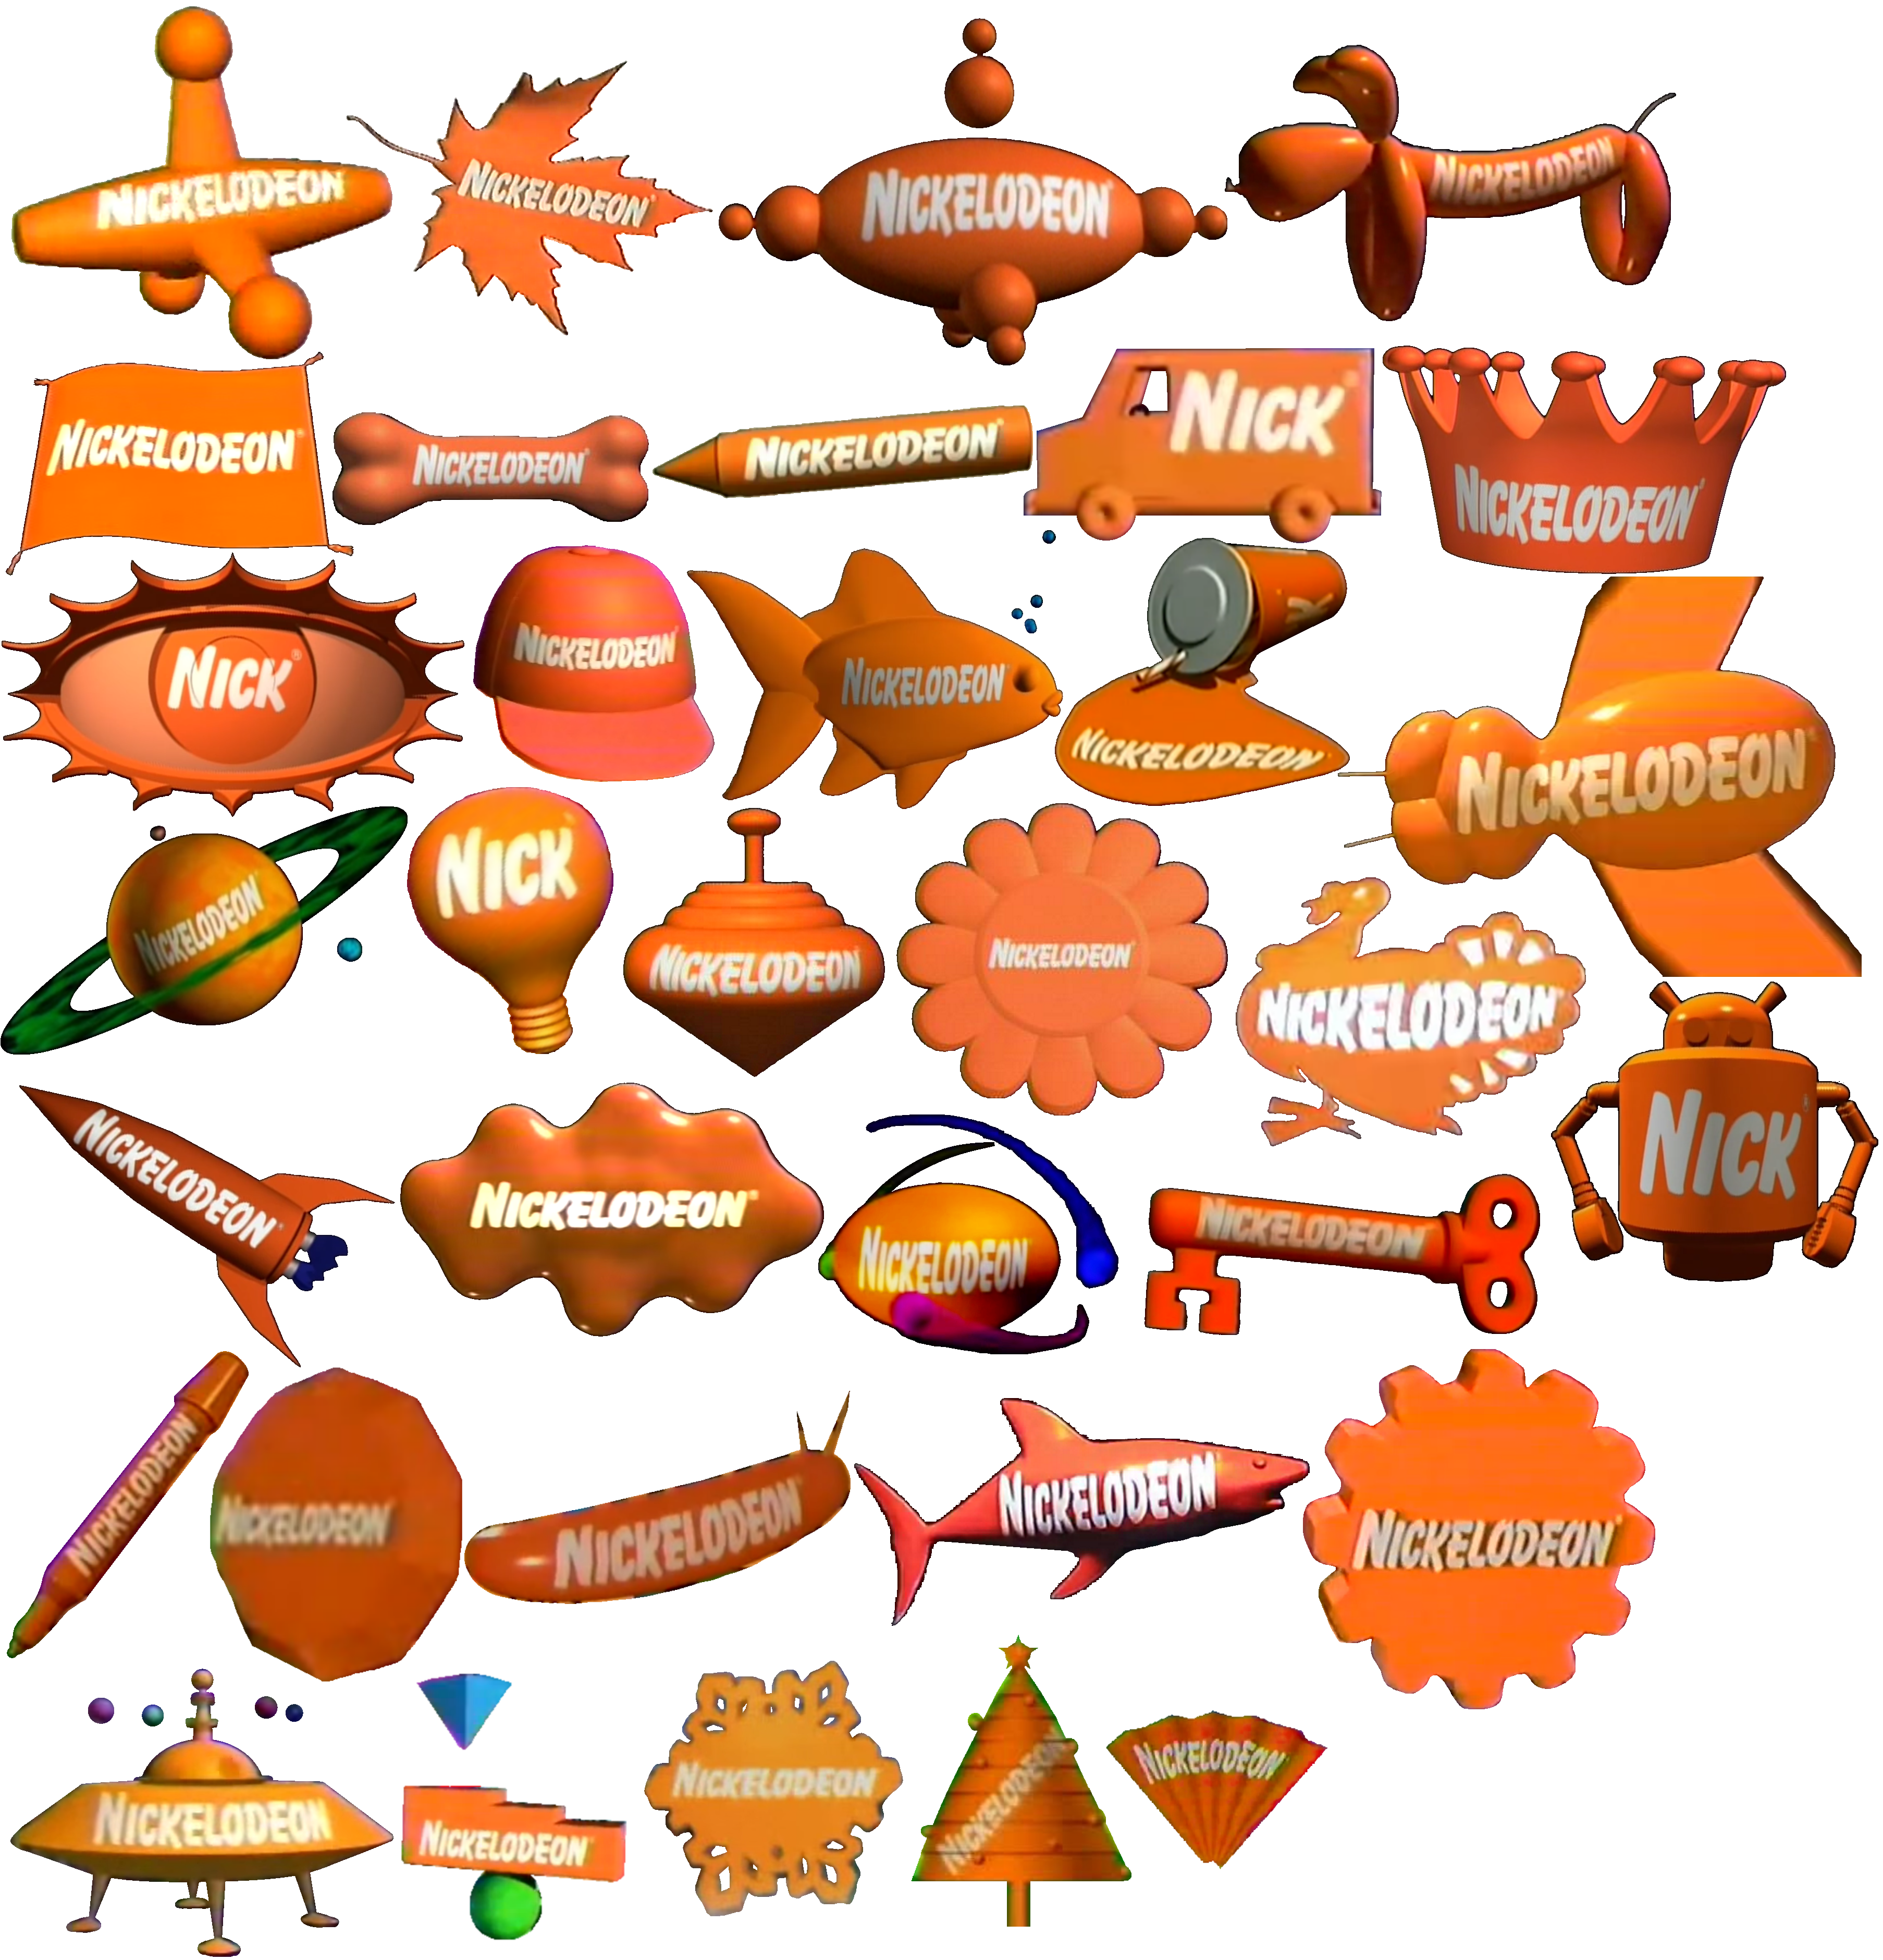 Nickelodeon 3d Logos 1993 2010 By Lukesamsthesecond On Deviantart